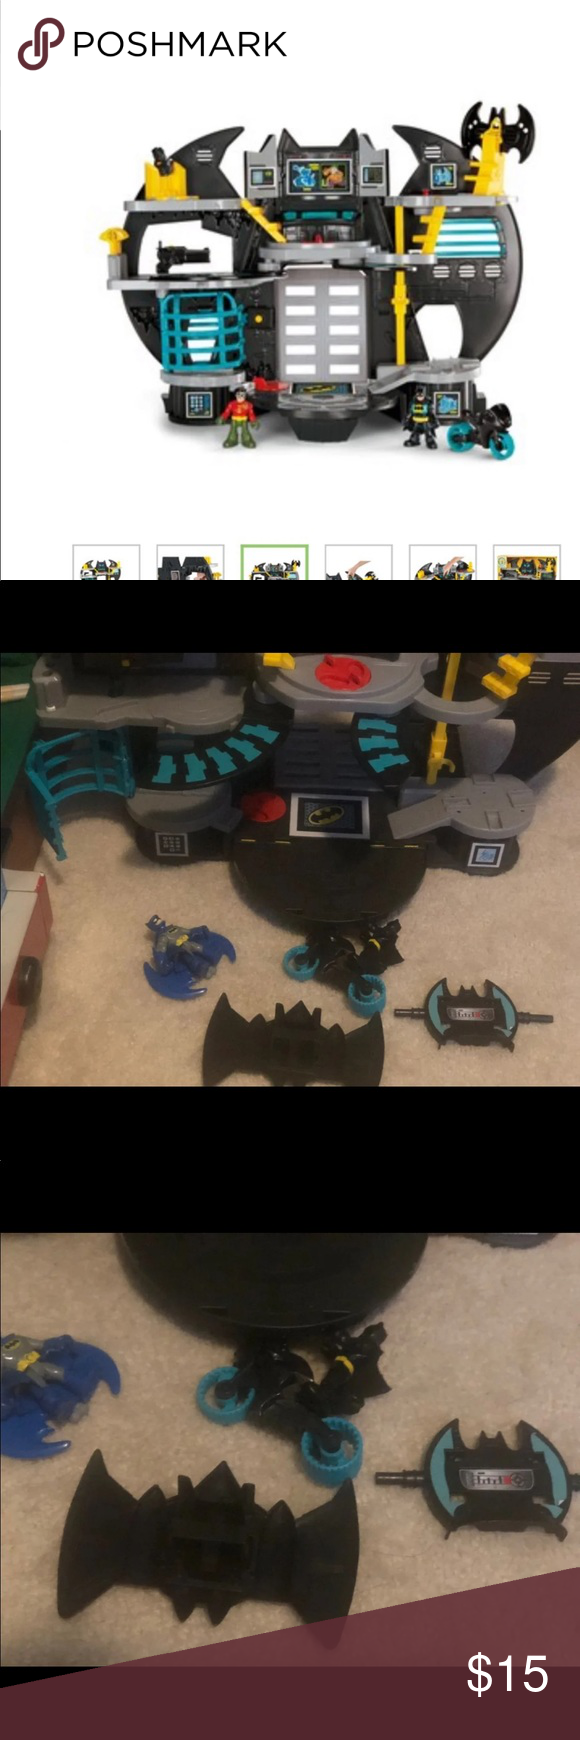 Imaginext Batman batcave Imaginext DC Superfriends Batcave by Fisher-Price. Like new missing one yellow shooter  Turn the Power Pads to open the Batcomputer & extend walkways, flip up the Batwing, and open & close the front door! Press button on launcher to fire projectiles Clip a figure into elevator to access all of the Batcave levels Press button on wall to pop open jail door 50 new  Will take reasonable offer will only have available for couple weeks imaginext Accessories #walkwaystofrontdoo #walkwaystofrontdoor